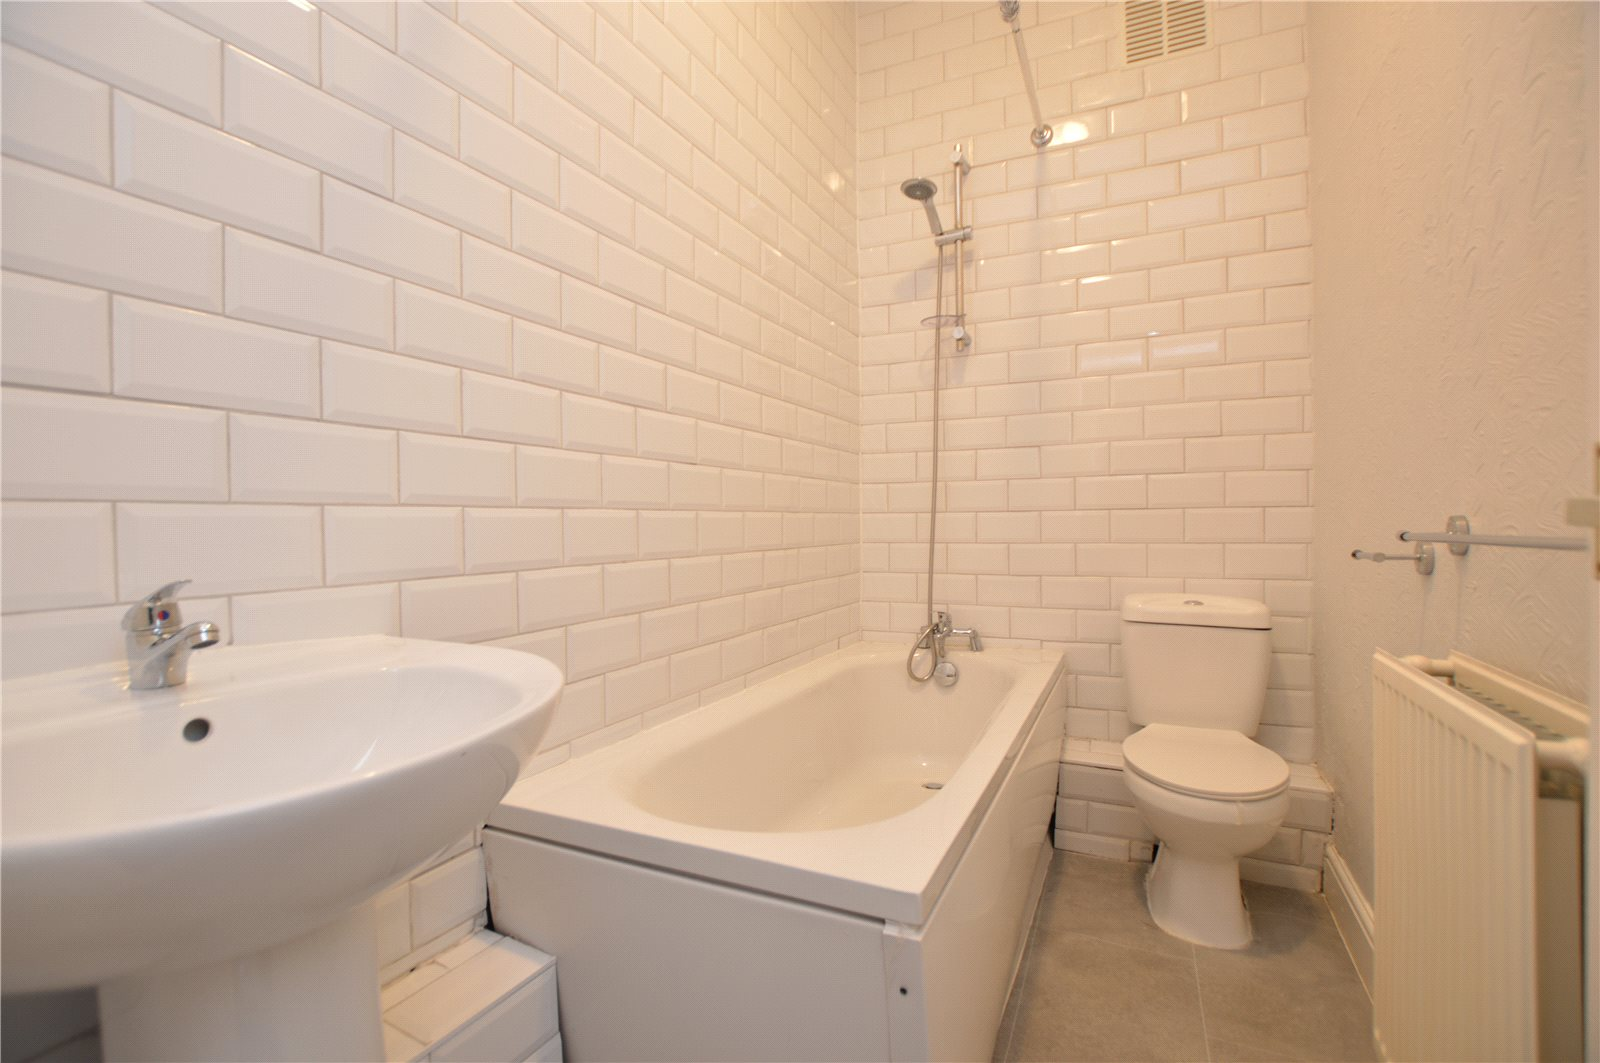 property for sale in Morley, interior whit bathroom suite